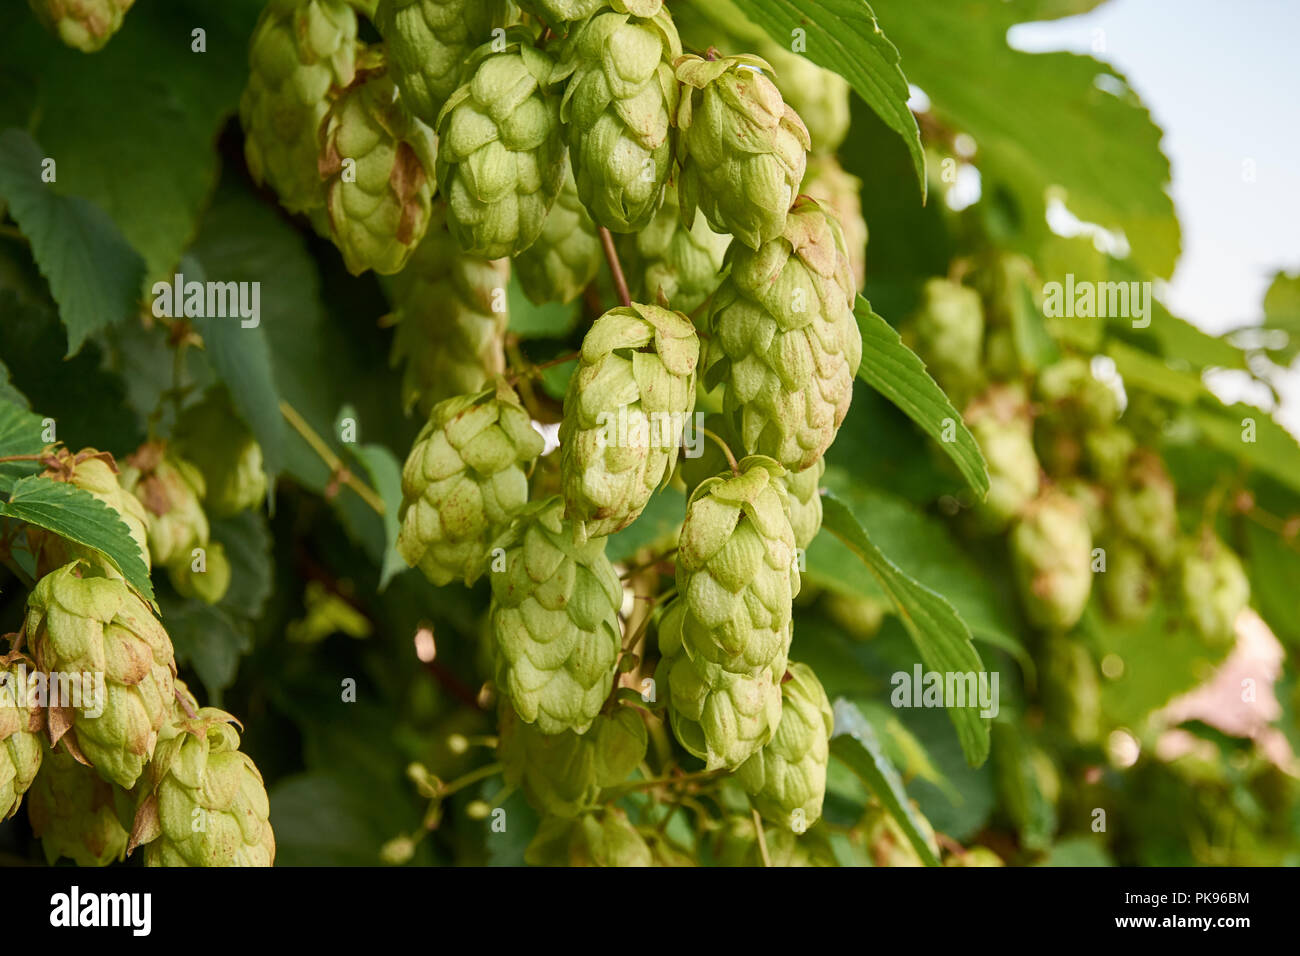 Close-up of plant, cones and hops leaves with defocused background - Stock Image